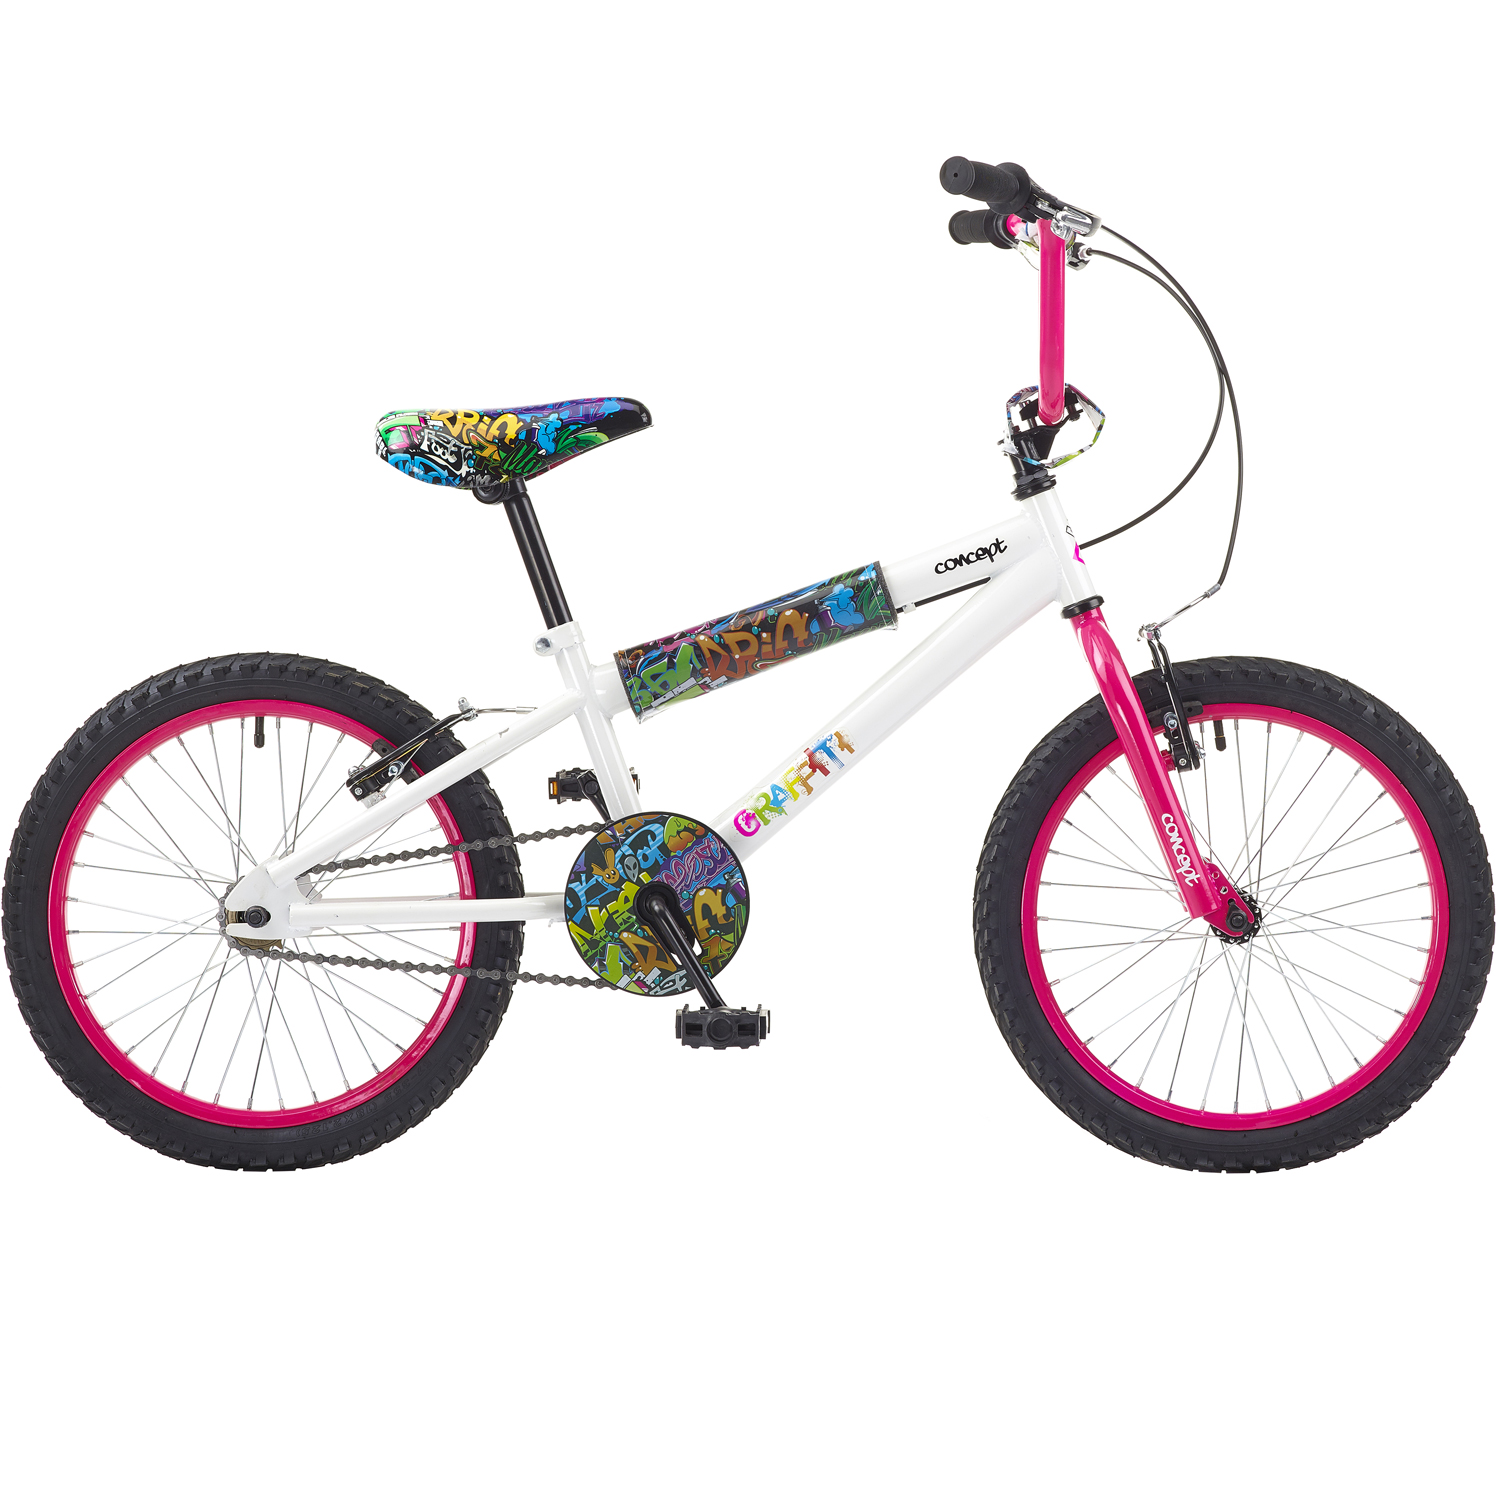 kinder bmx concept graffiti 18 zoll kinderfahrrad wei. Black Bedroom Furniture Sets. Home Design Ideas